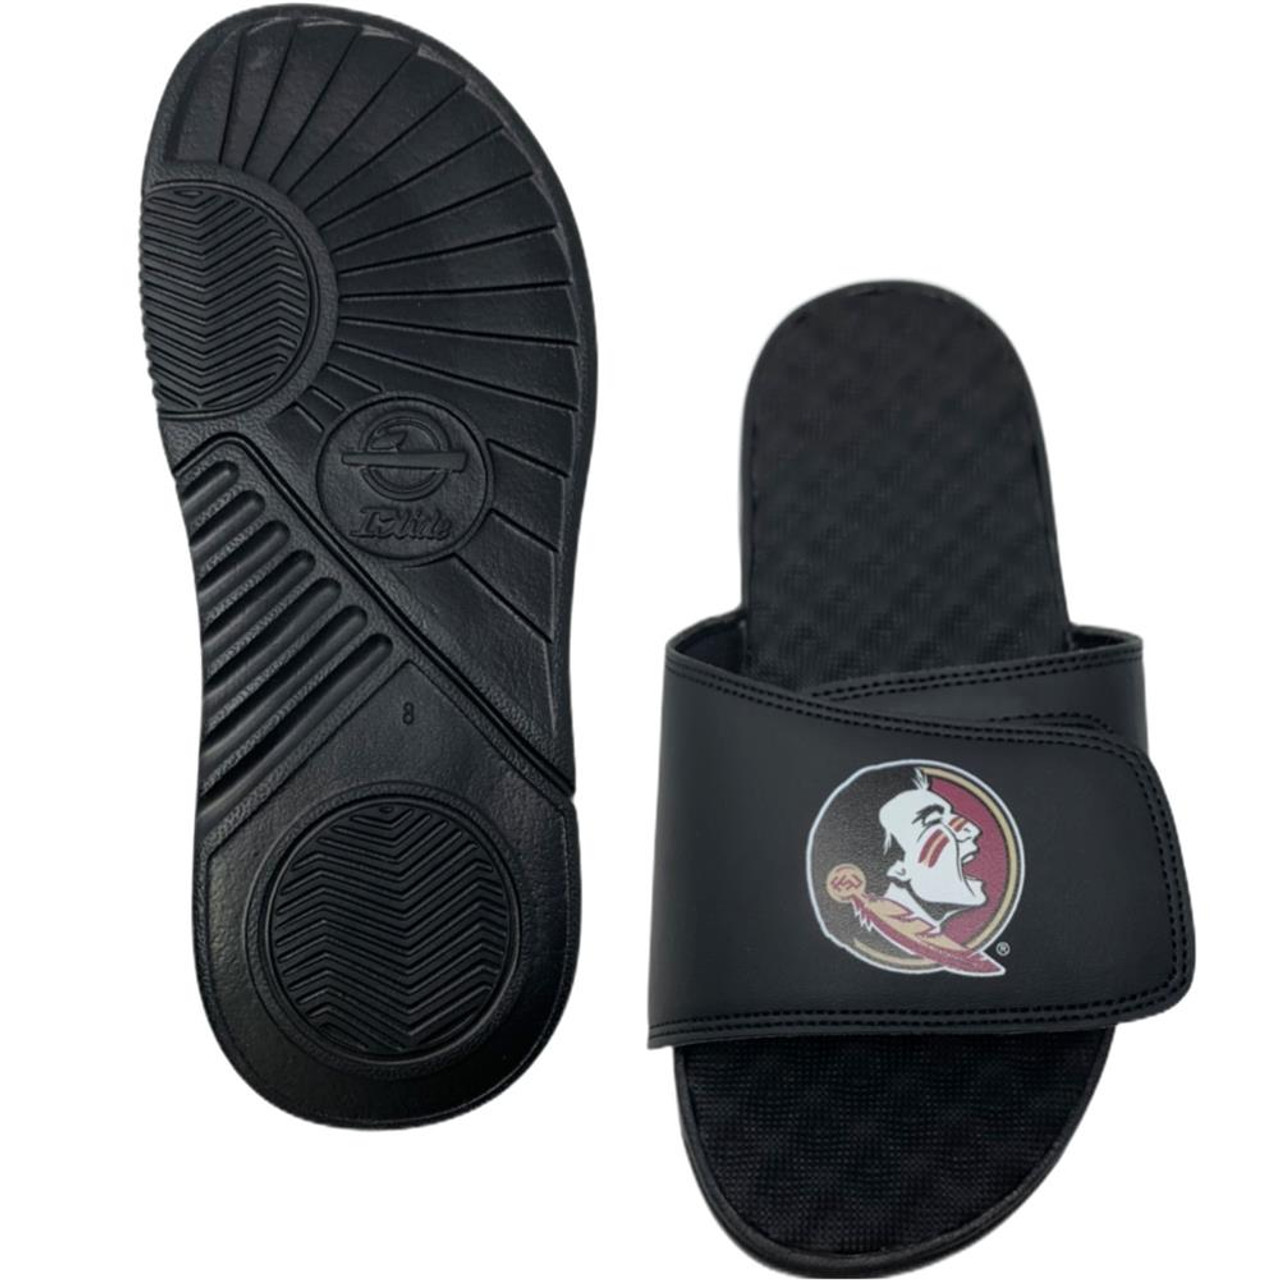 Miami Heat Slides ISlide Primary Adjustable Sandals